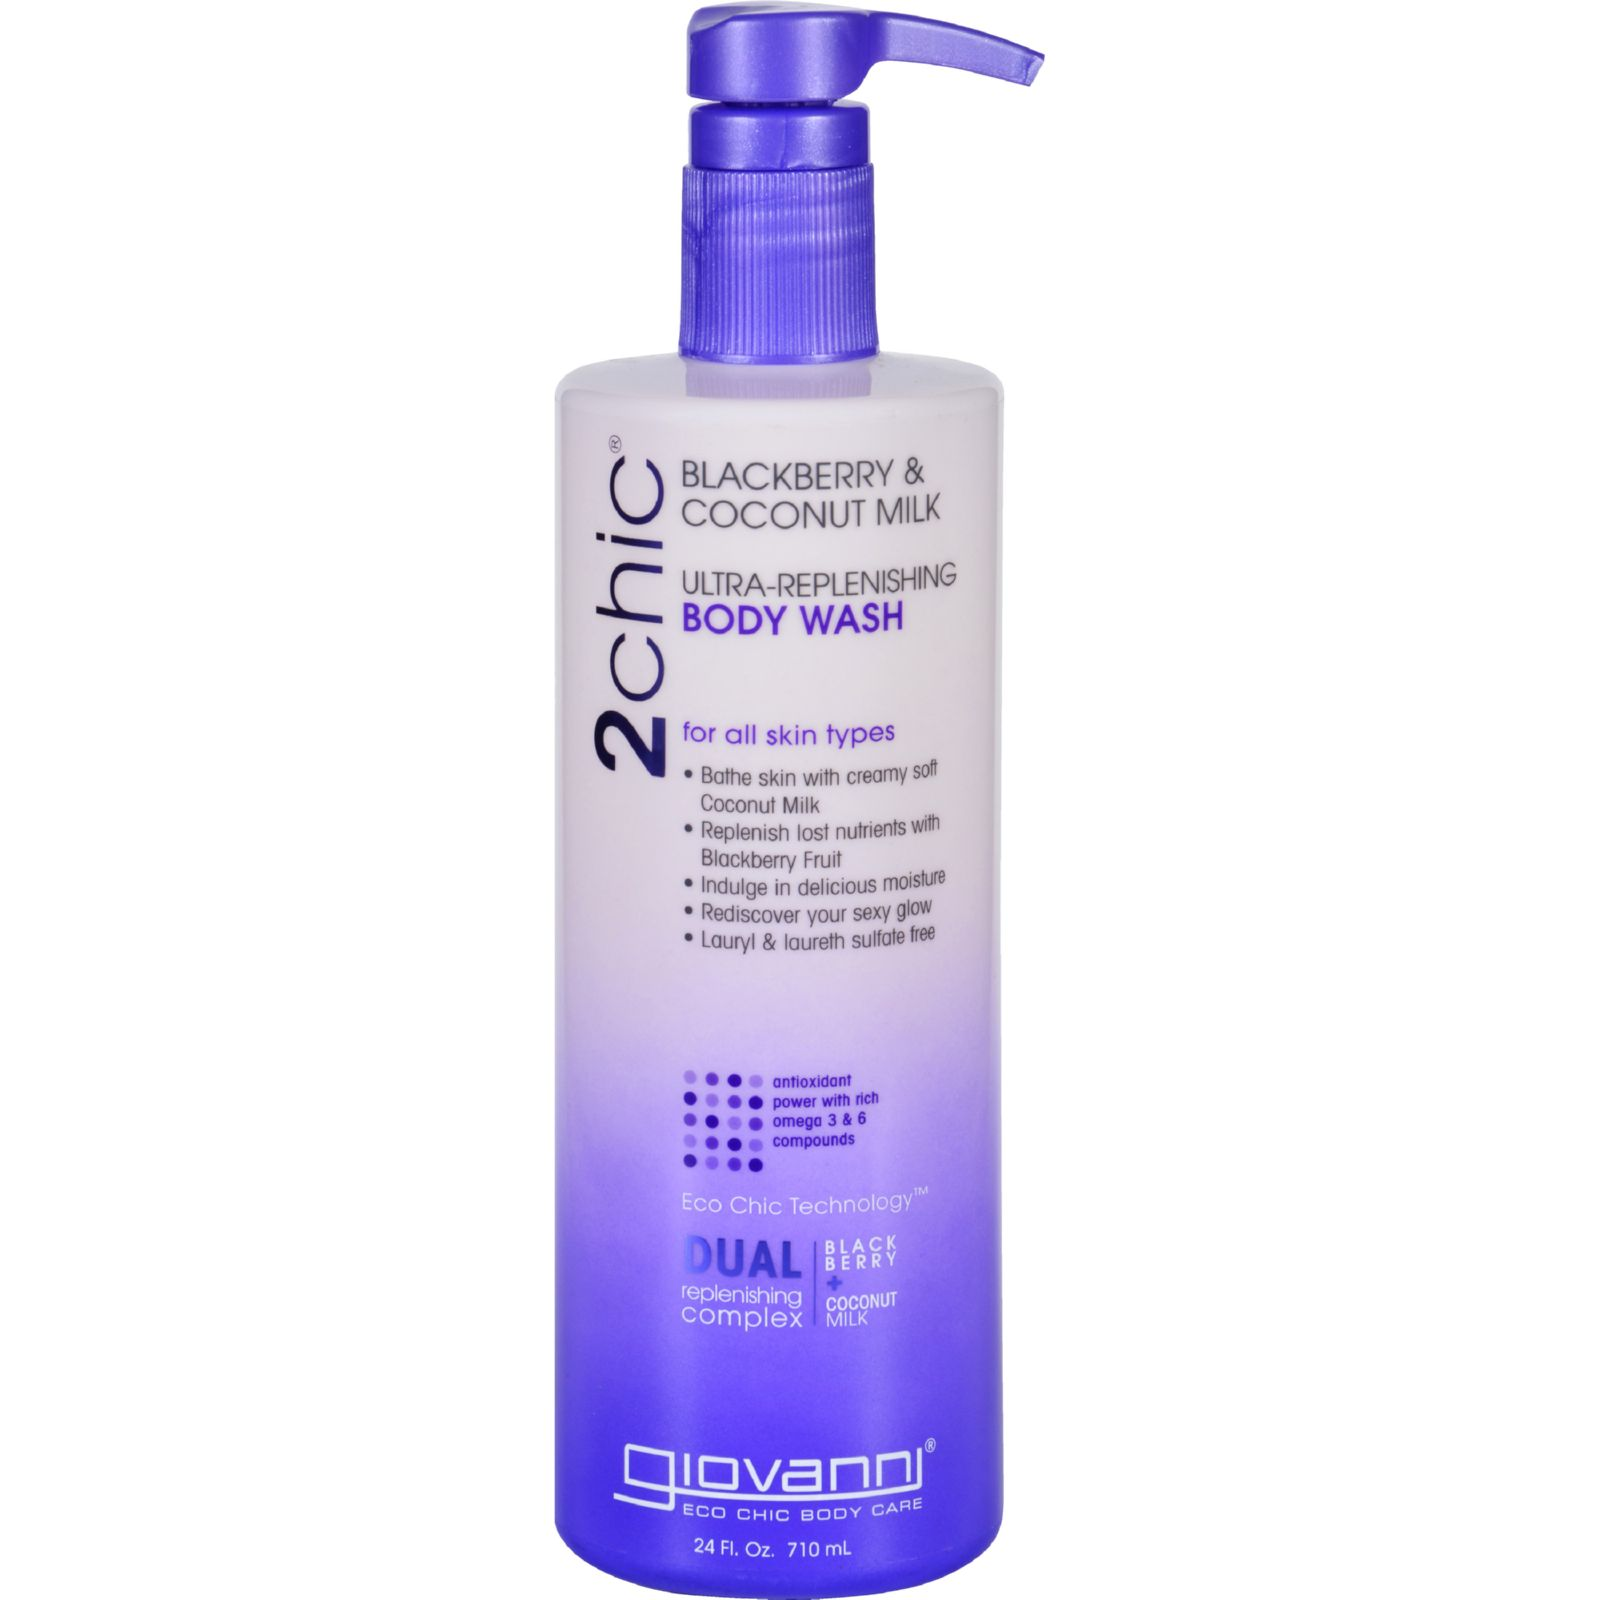 Giovanni Hair Care Products Body Wash  2chic  Repairing  Ultra Replenishing  Blackberry and Coconut Milk  Value Size  24 oz